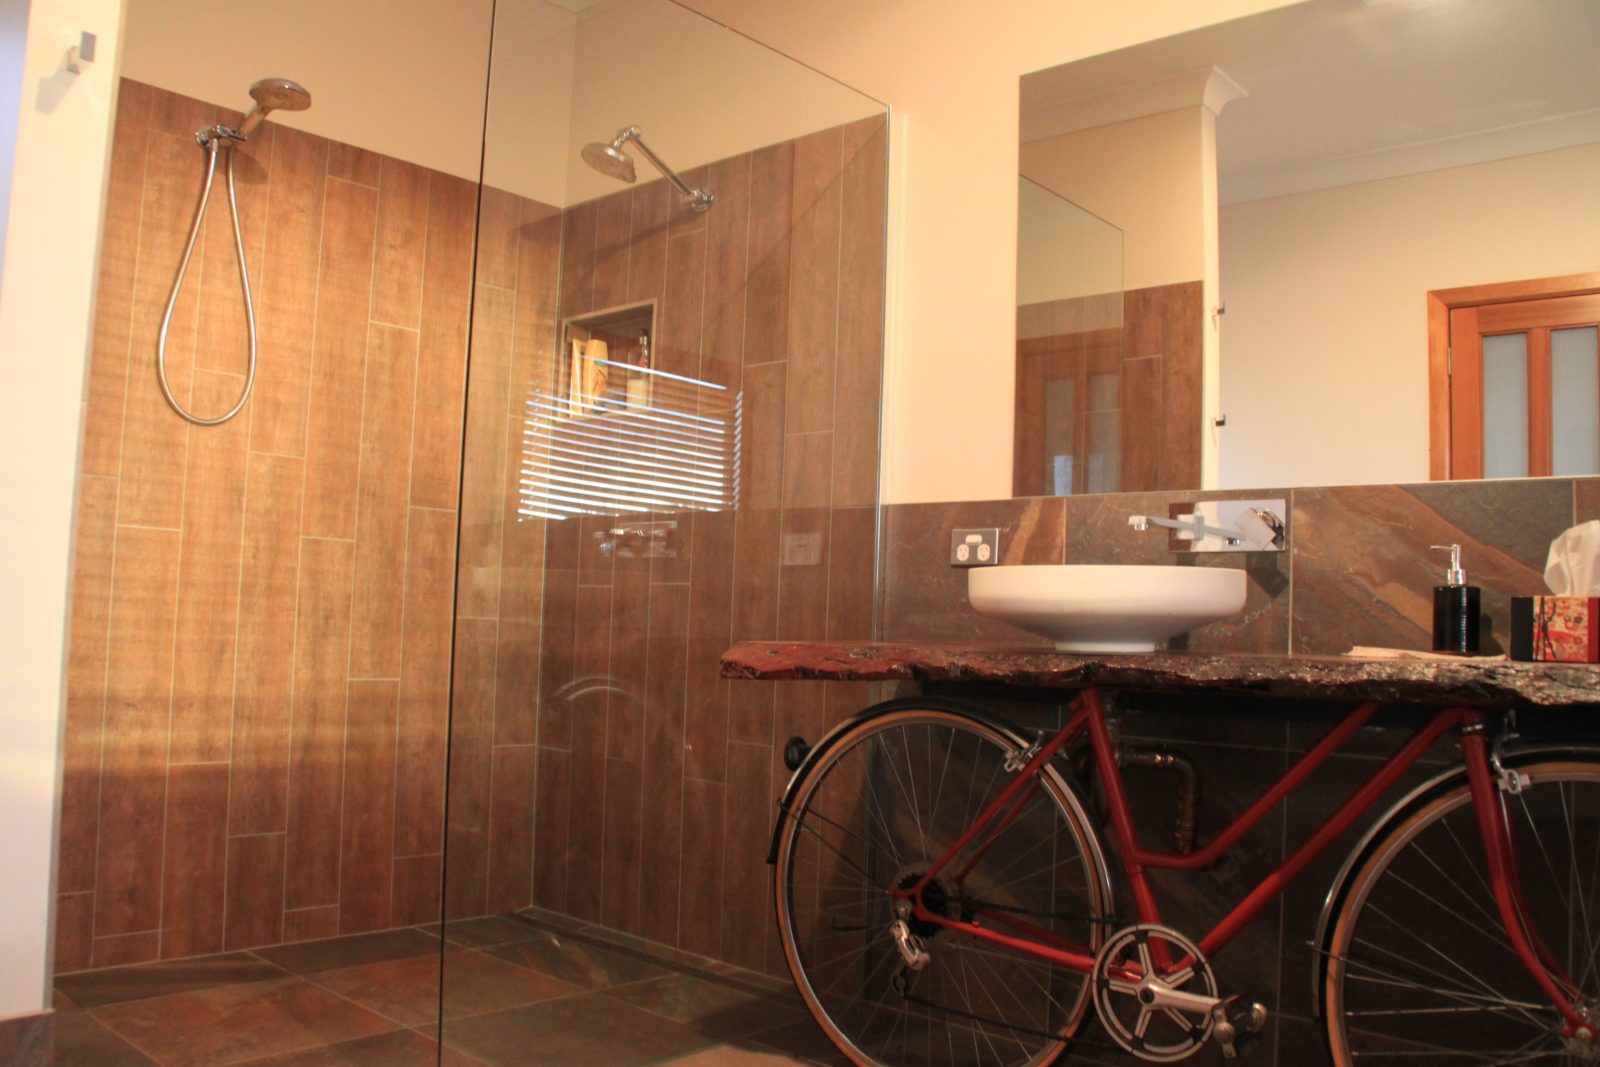 Double shower and vanity - there is also a HUGE bath !